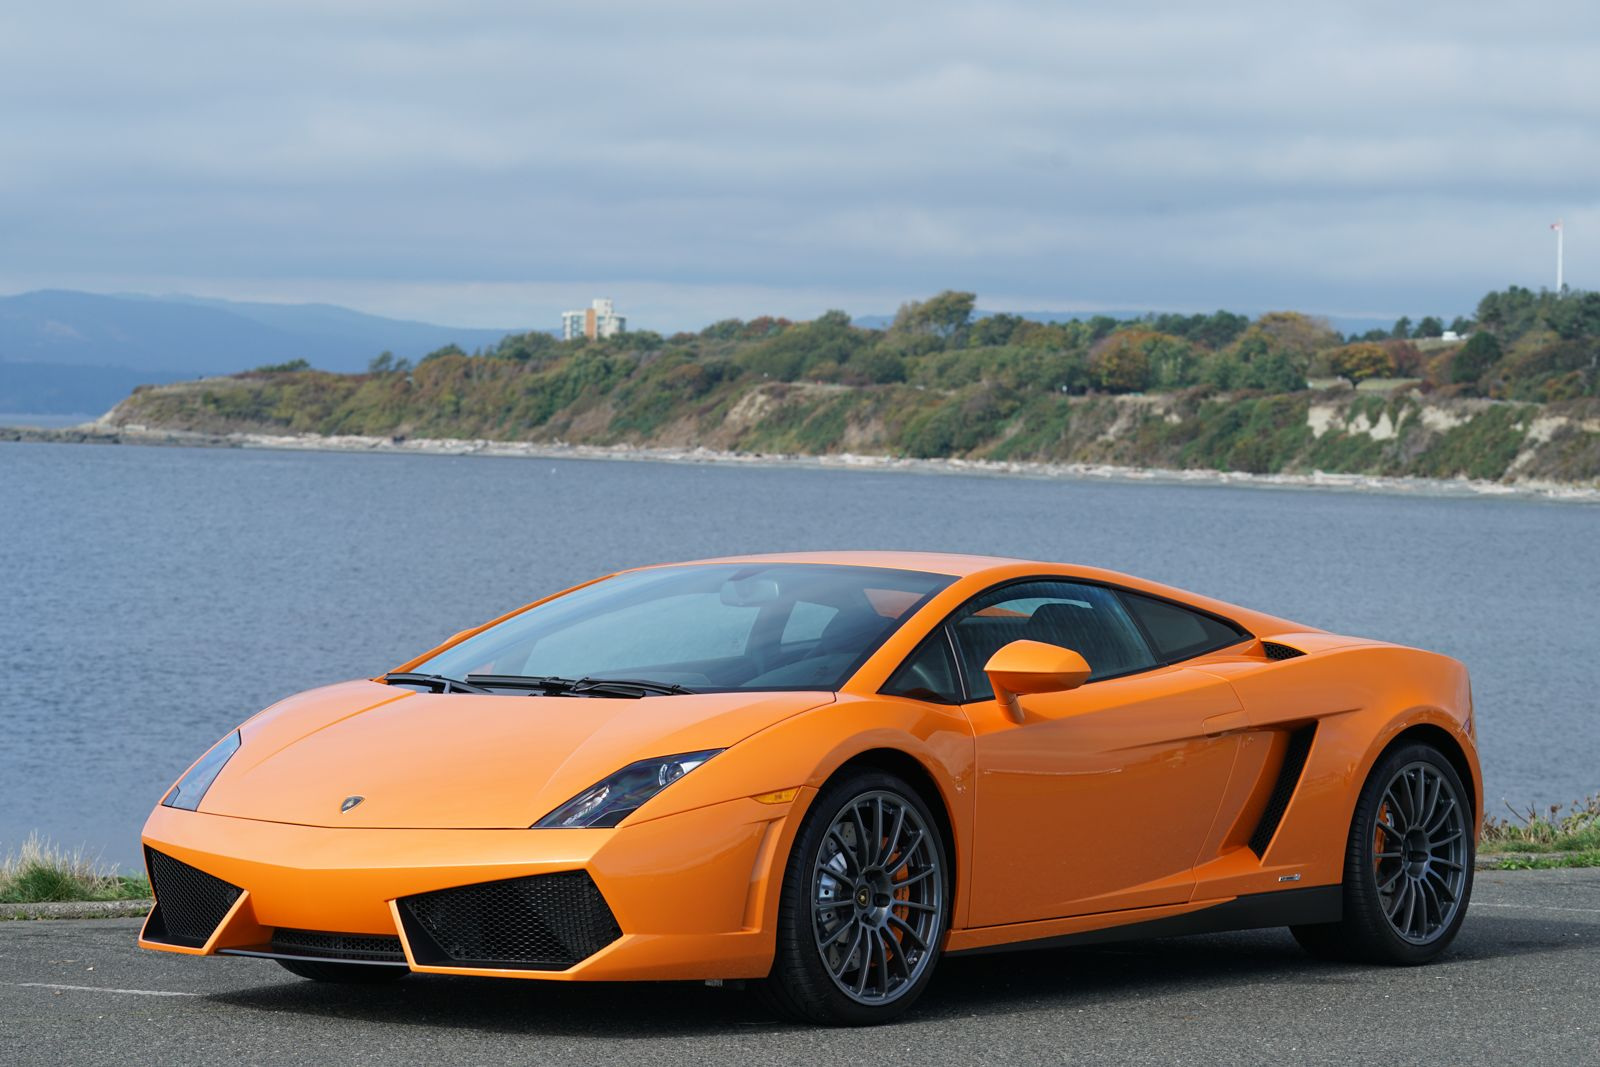 Best 25 gallardo for sale ideas on pinterest lamborghini gallardo for sale lamborghini sale and lambo for sale